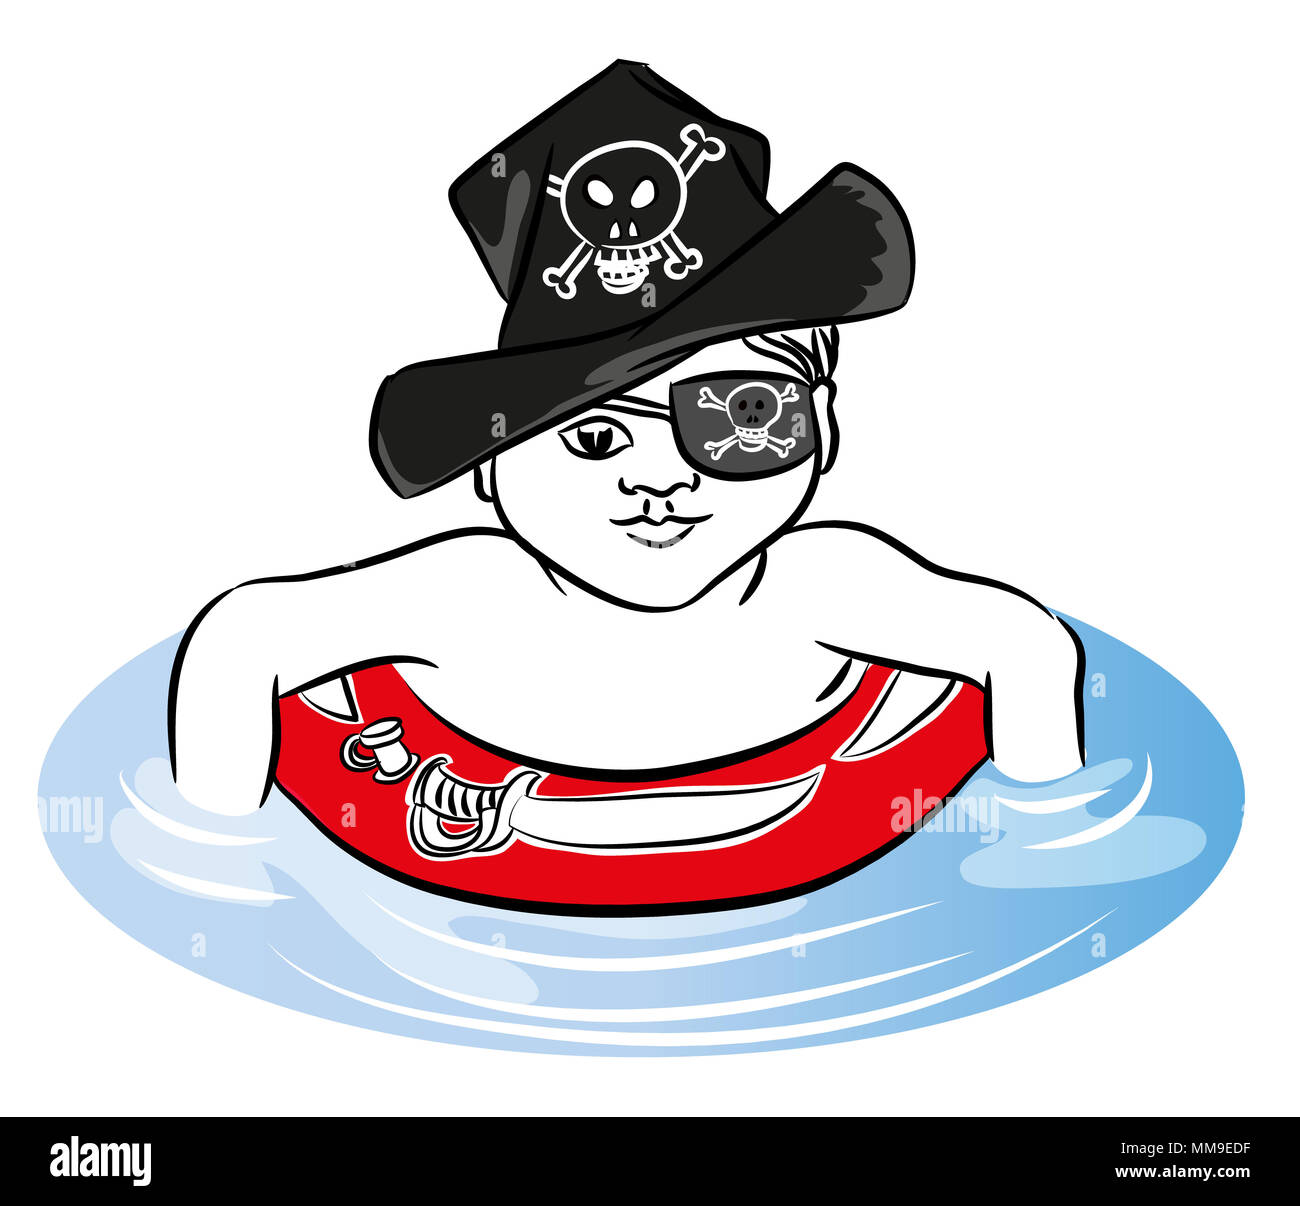 Pirate boy Pirate boy swimming with rubber ring in the sea. Pirate boy with rubber ring and hat. - Stock Image